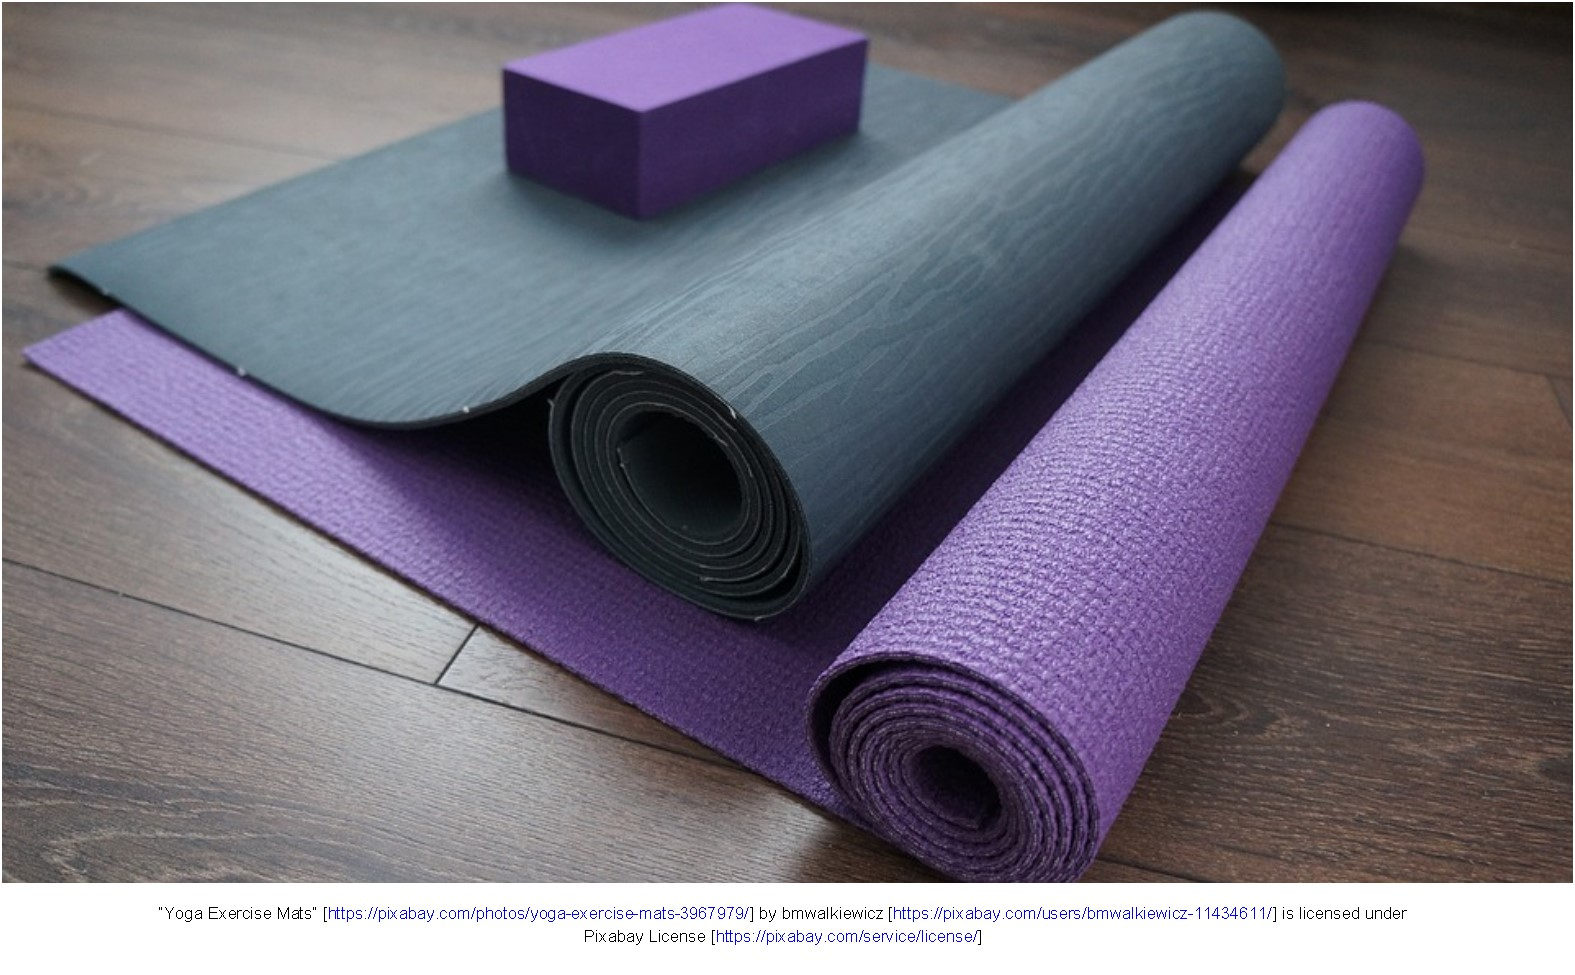 Two yoga mats with a yoga block